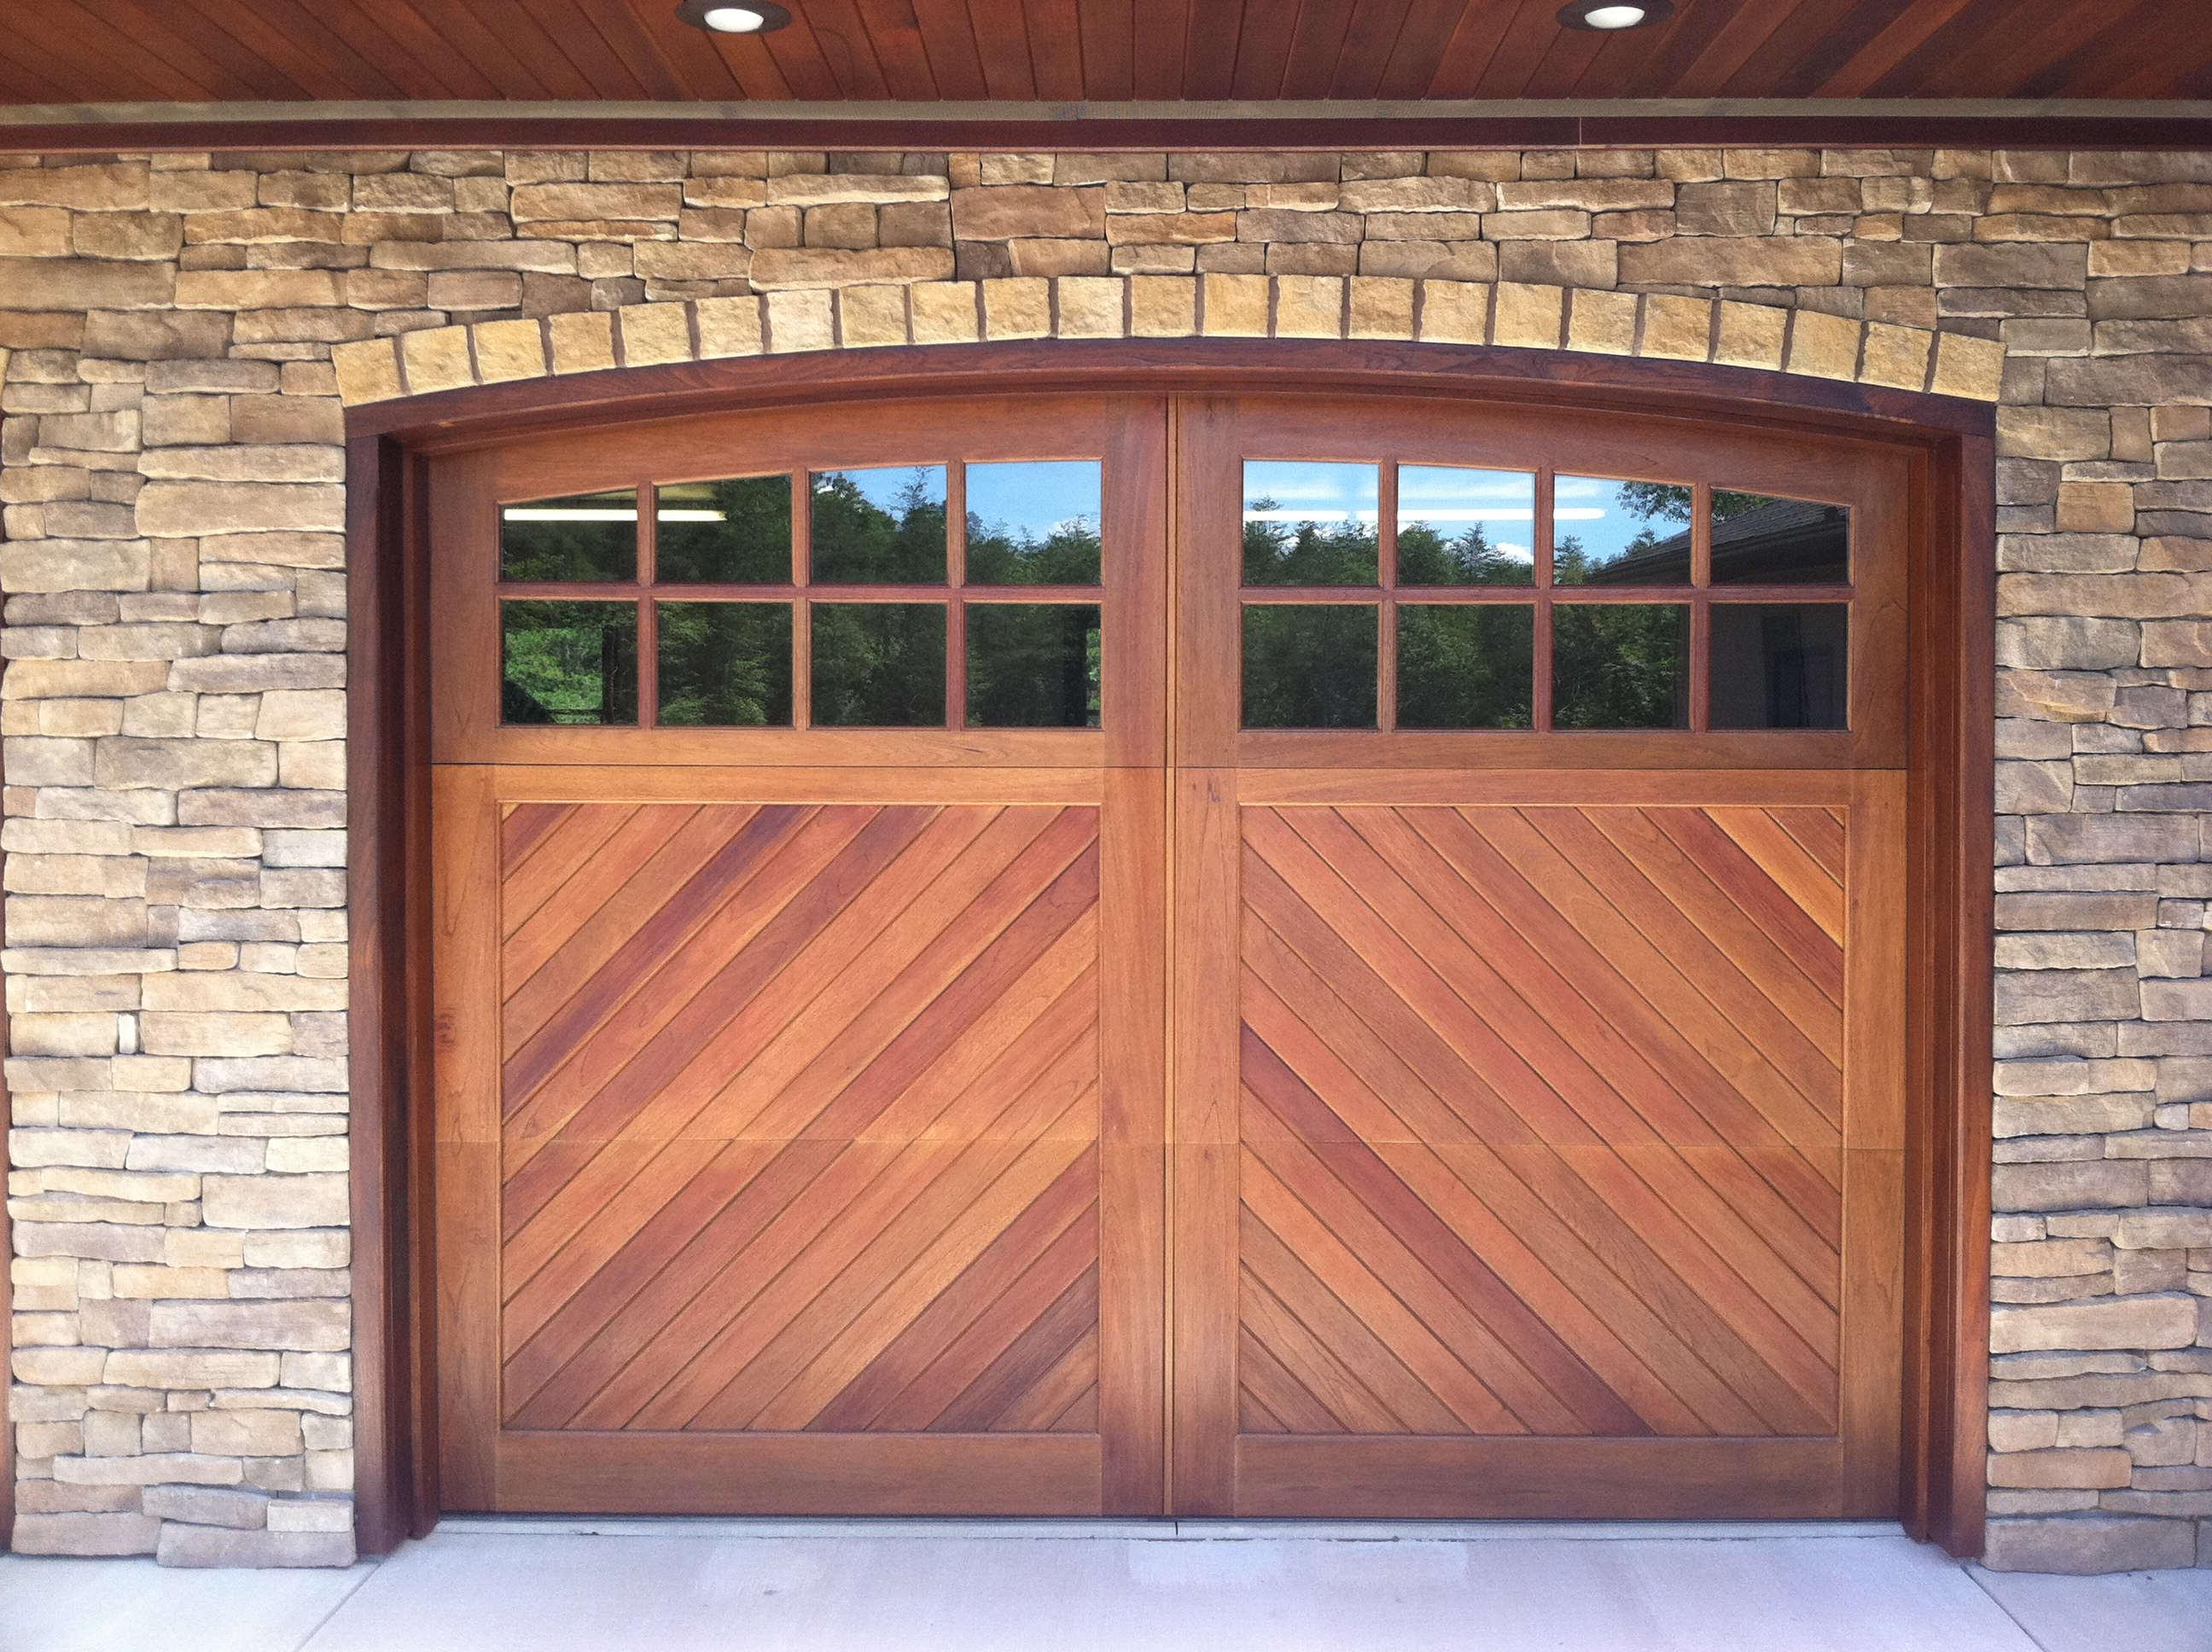 Garage And Front Doors That Match Wood Garage Doors And Carriage Doors Clearville Pennsylvania